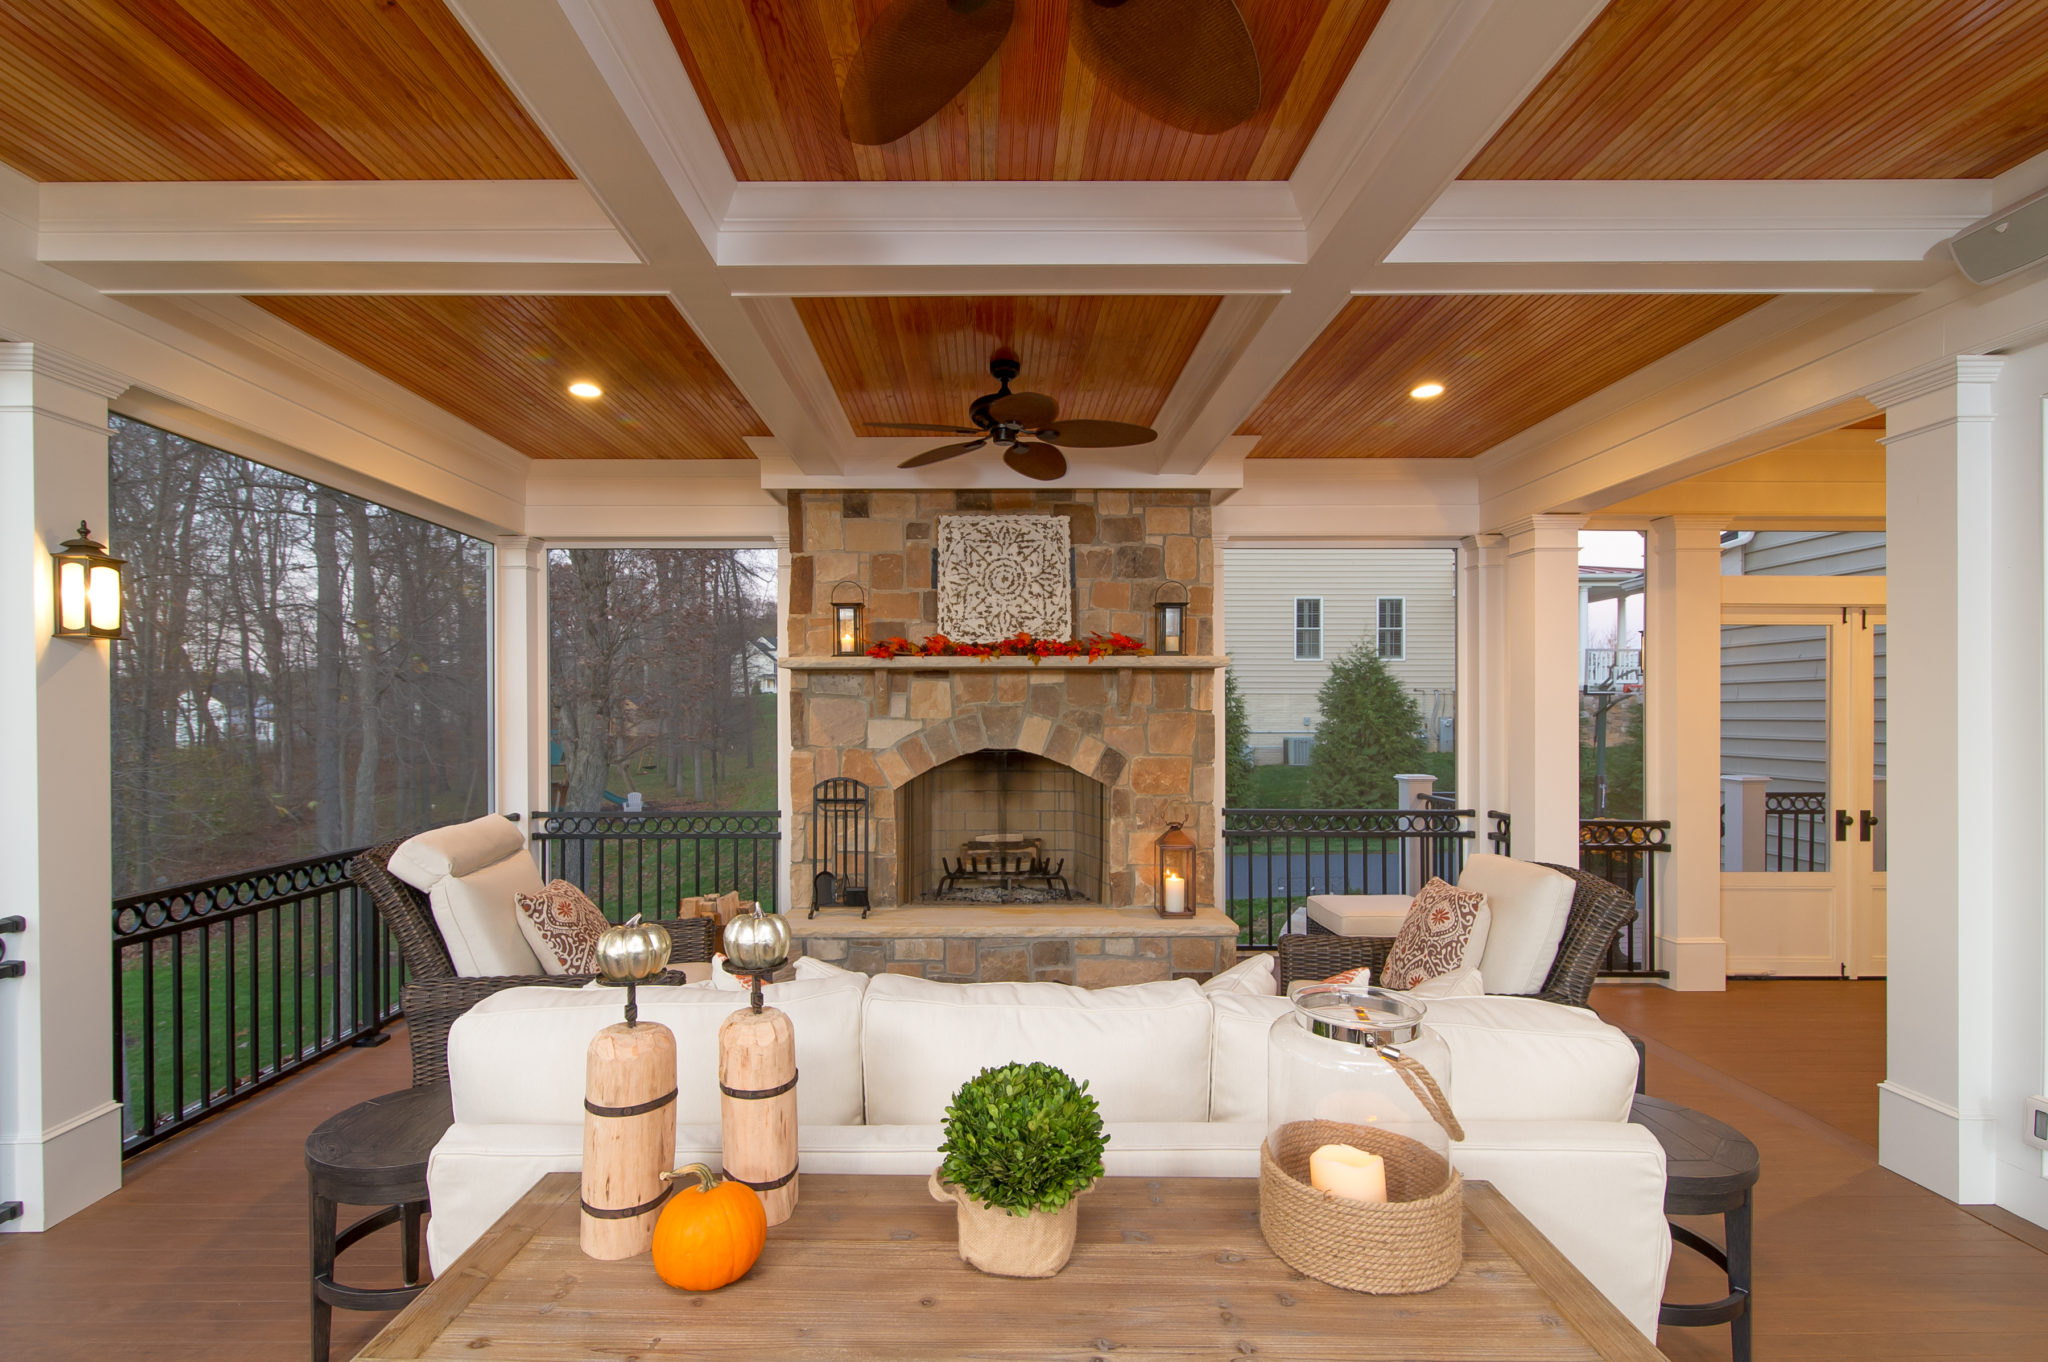 kansas fireplaces ceiling park lovely city outdoor jpg ideas screened fireplace in overland with shawnee archadeck porch ks olathe s lee vaulted for electric pictures